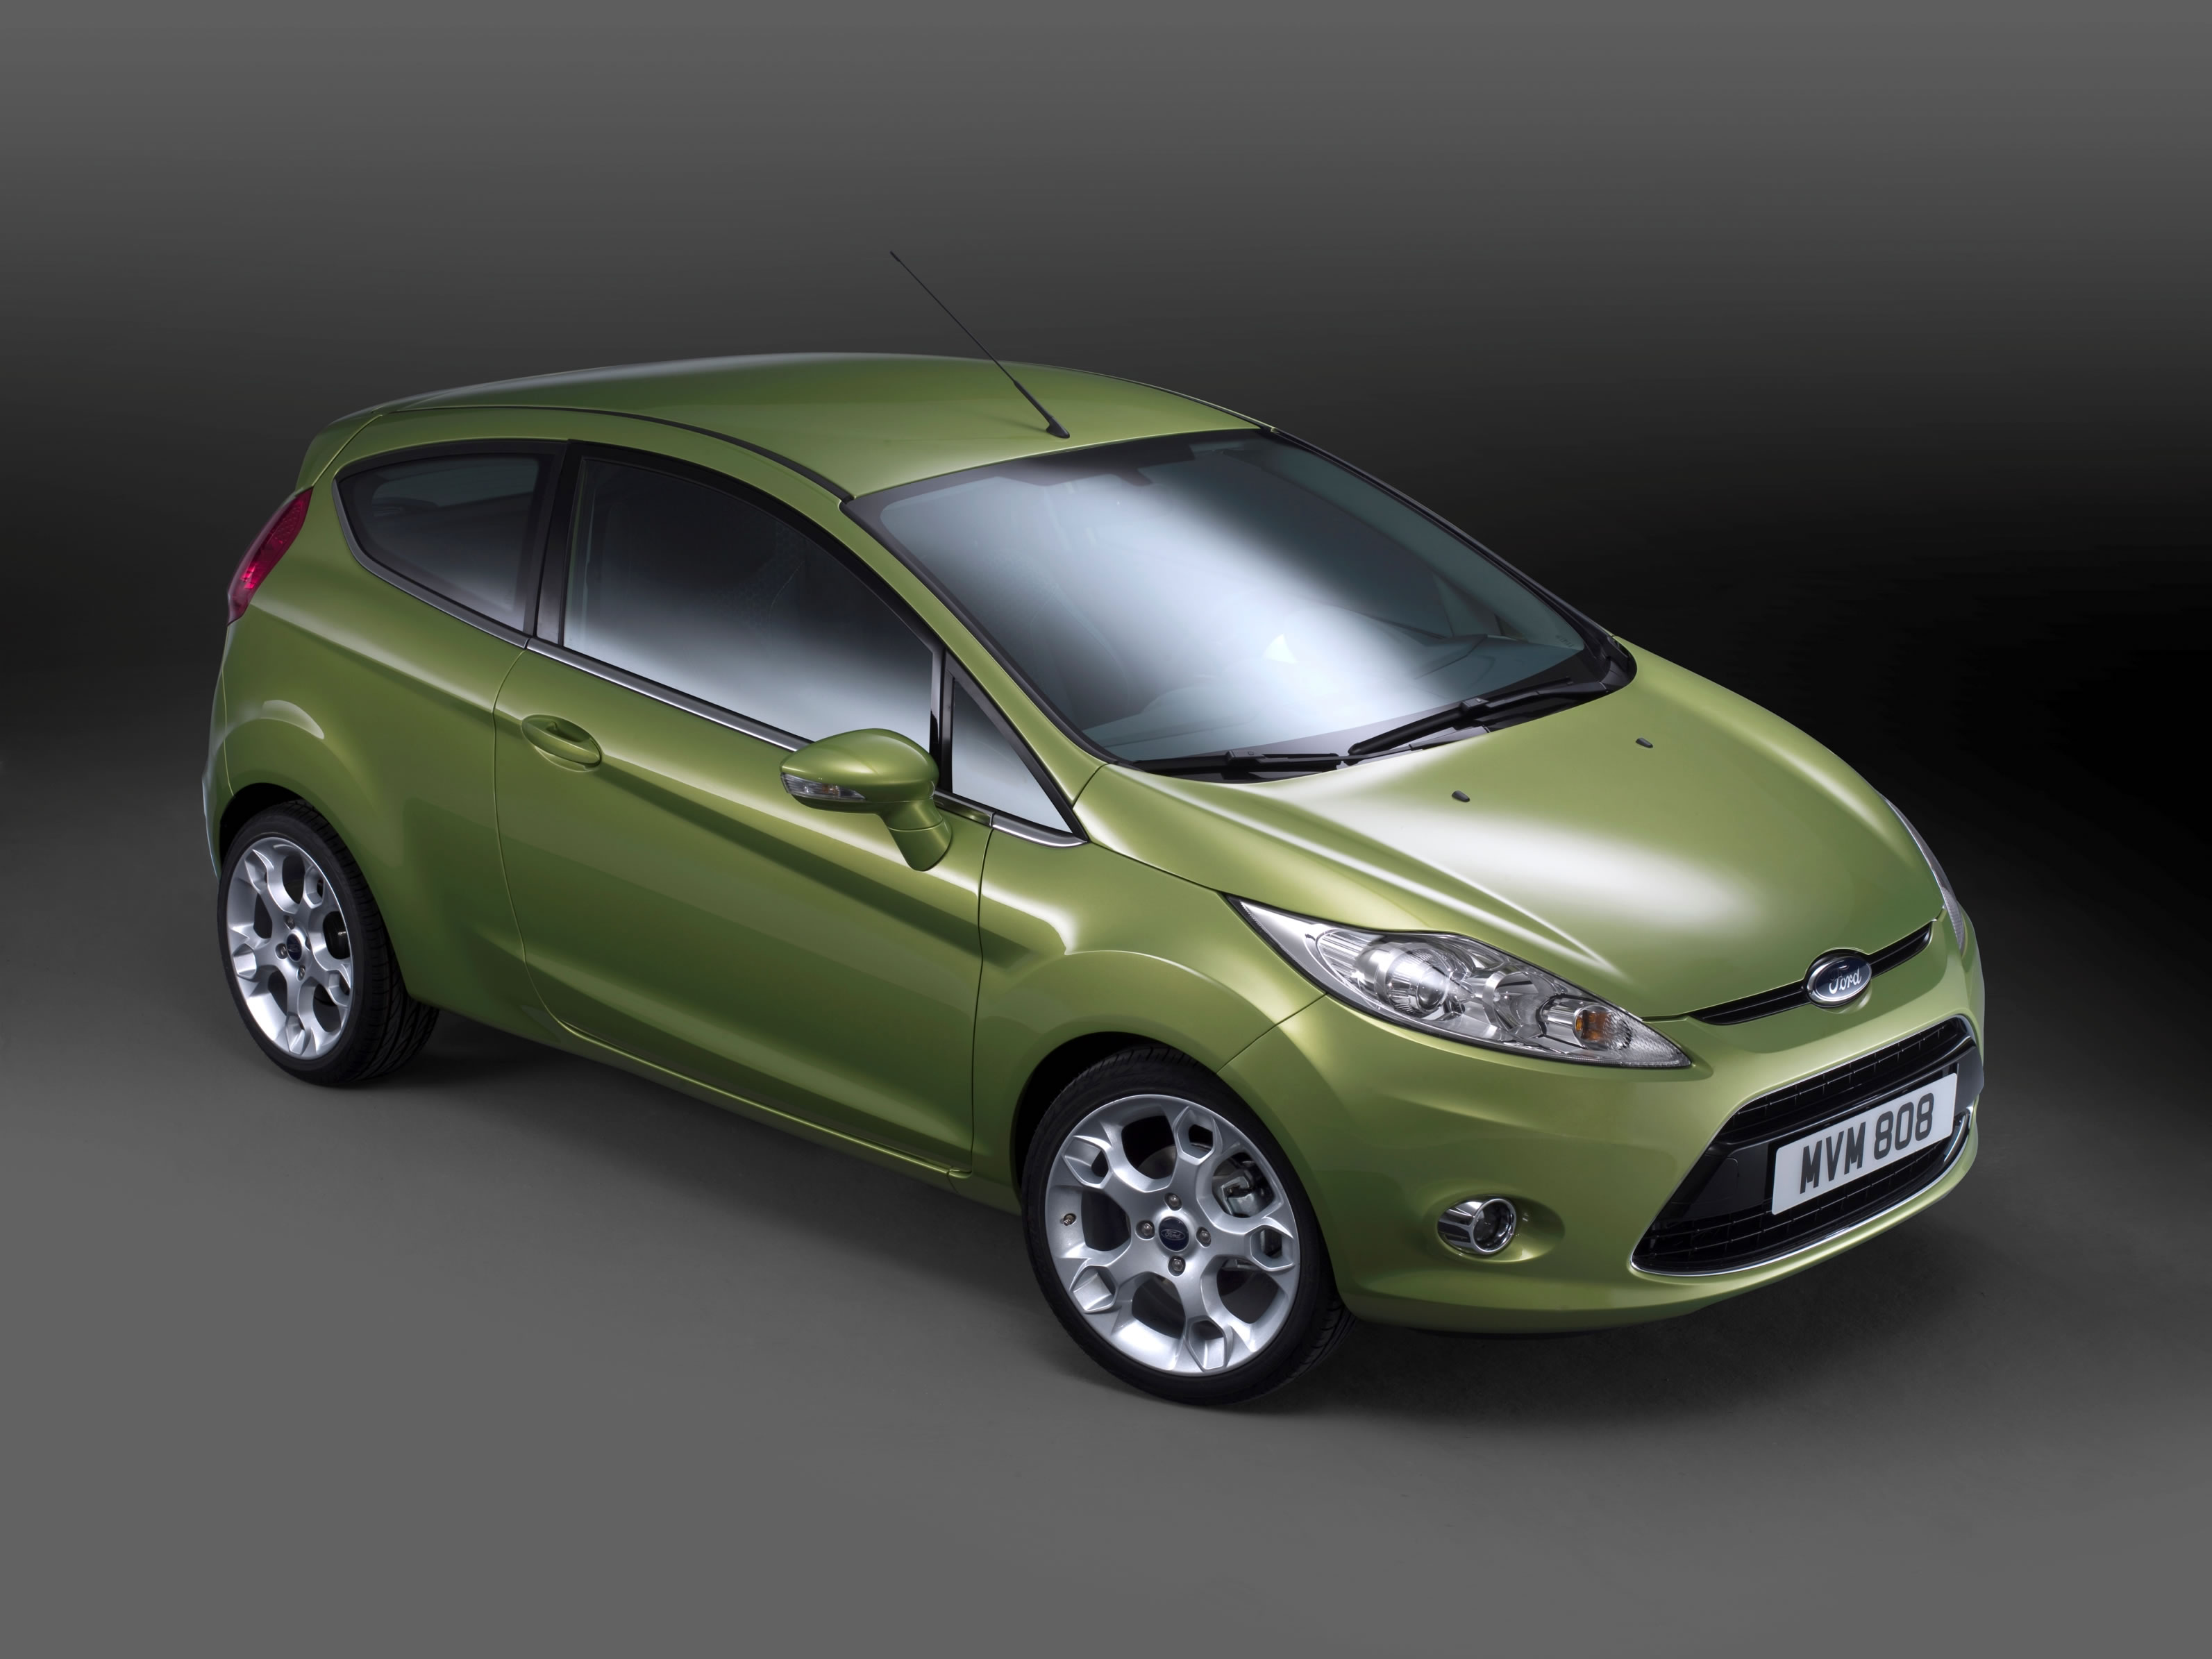 Ford Fiesta, proof that small is sexy